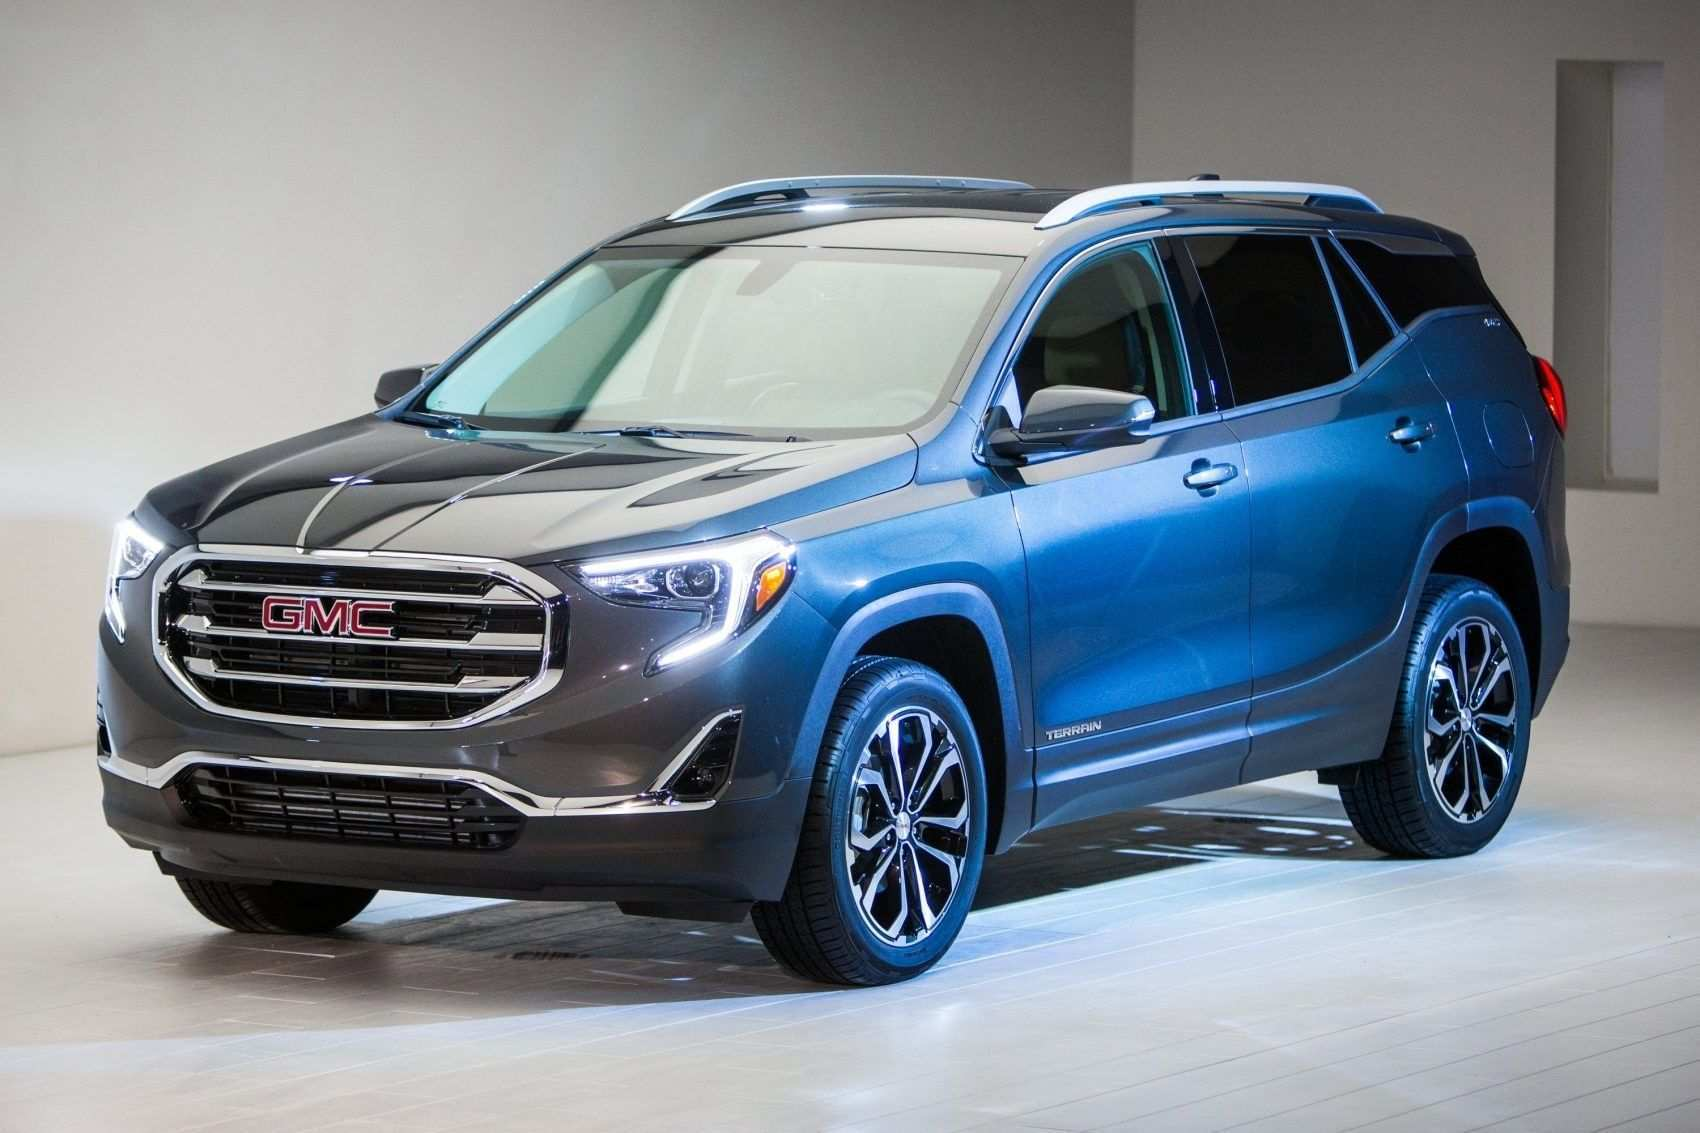 64 New Best 2019 Gmc Vehicles Release Interior with Best 2019 Gmc Vehicles Release